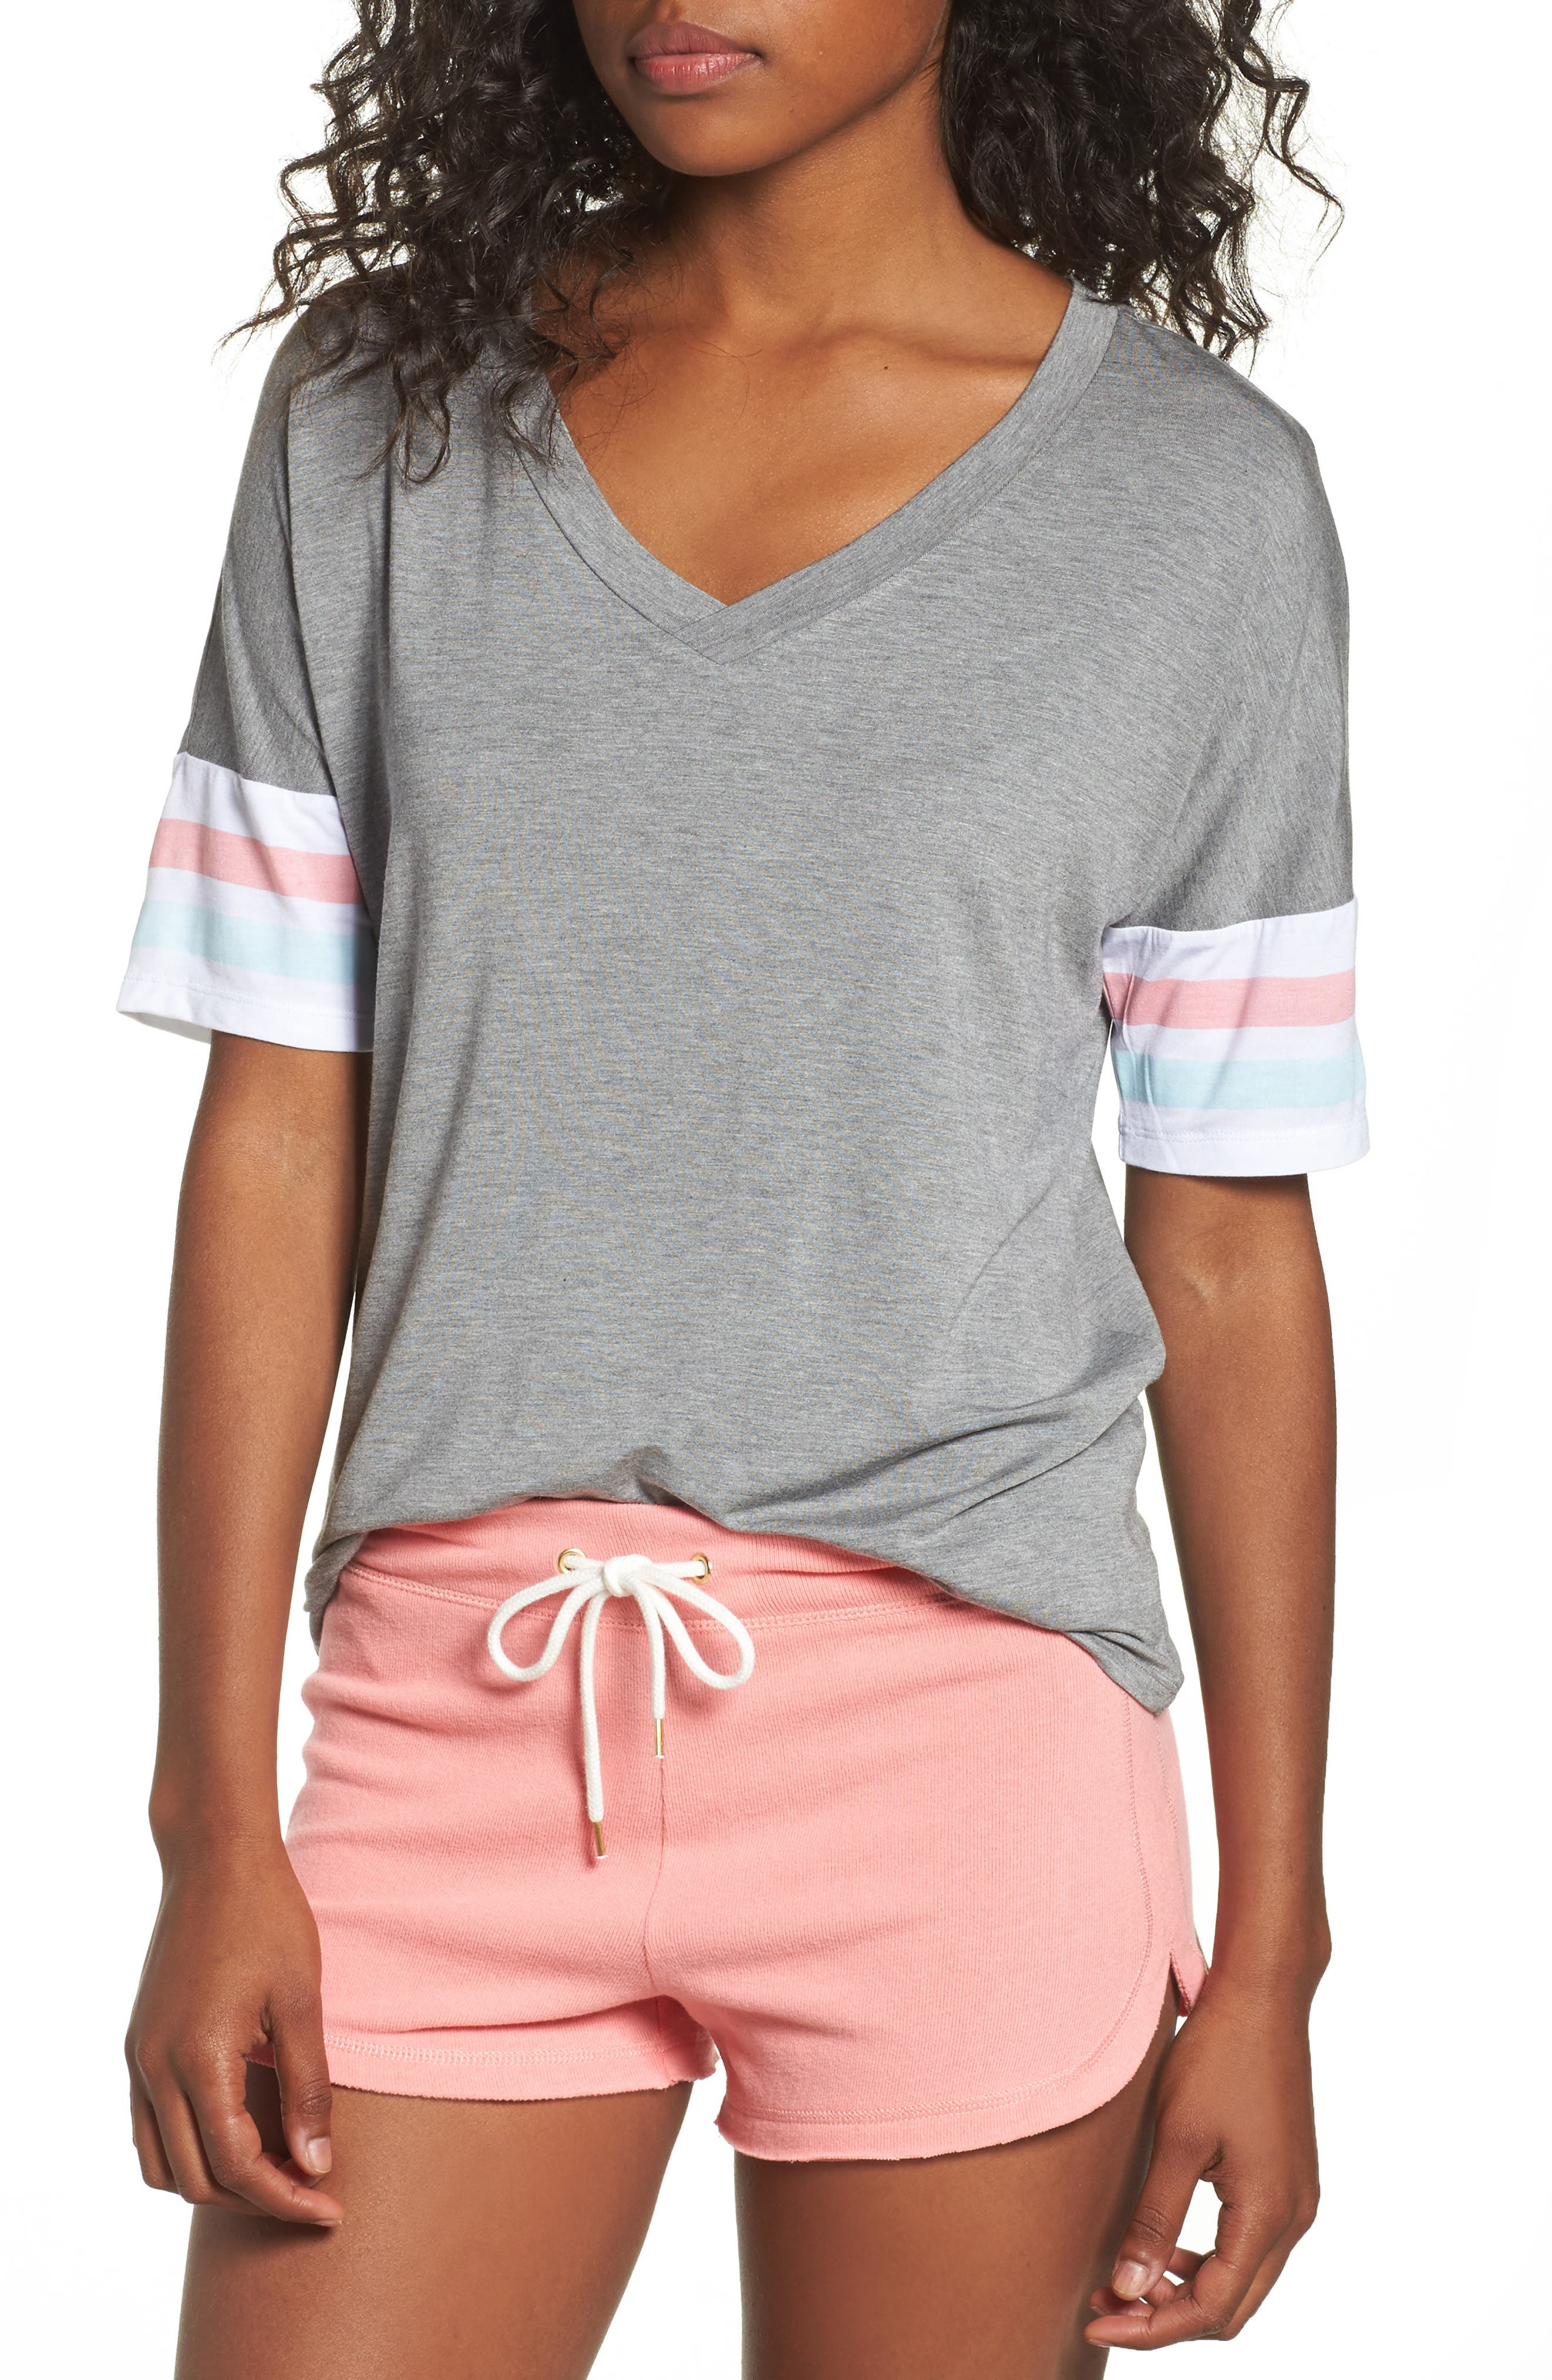 Honeydew Intimates Relaxin' Lounge Tee